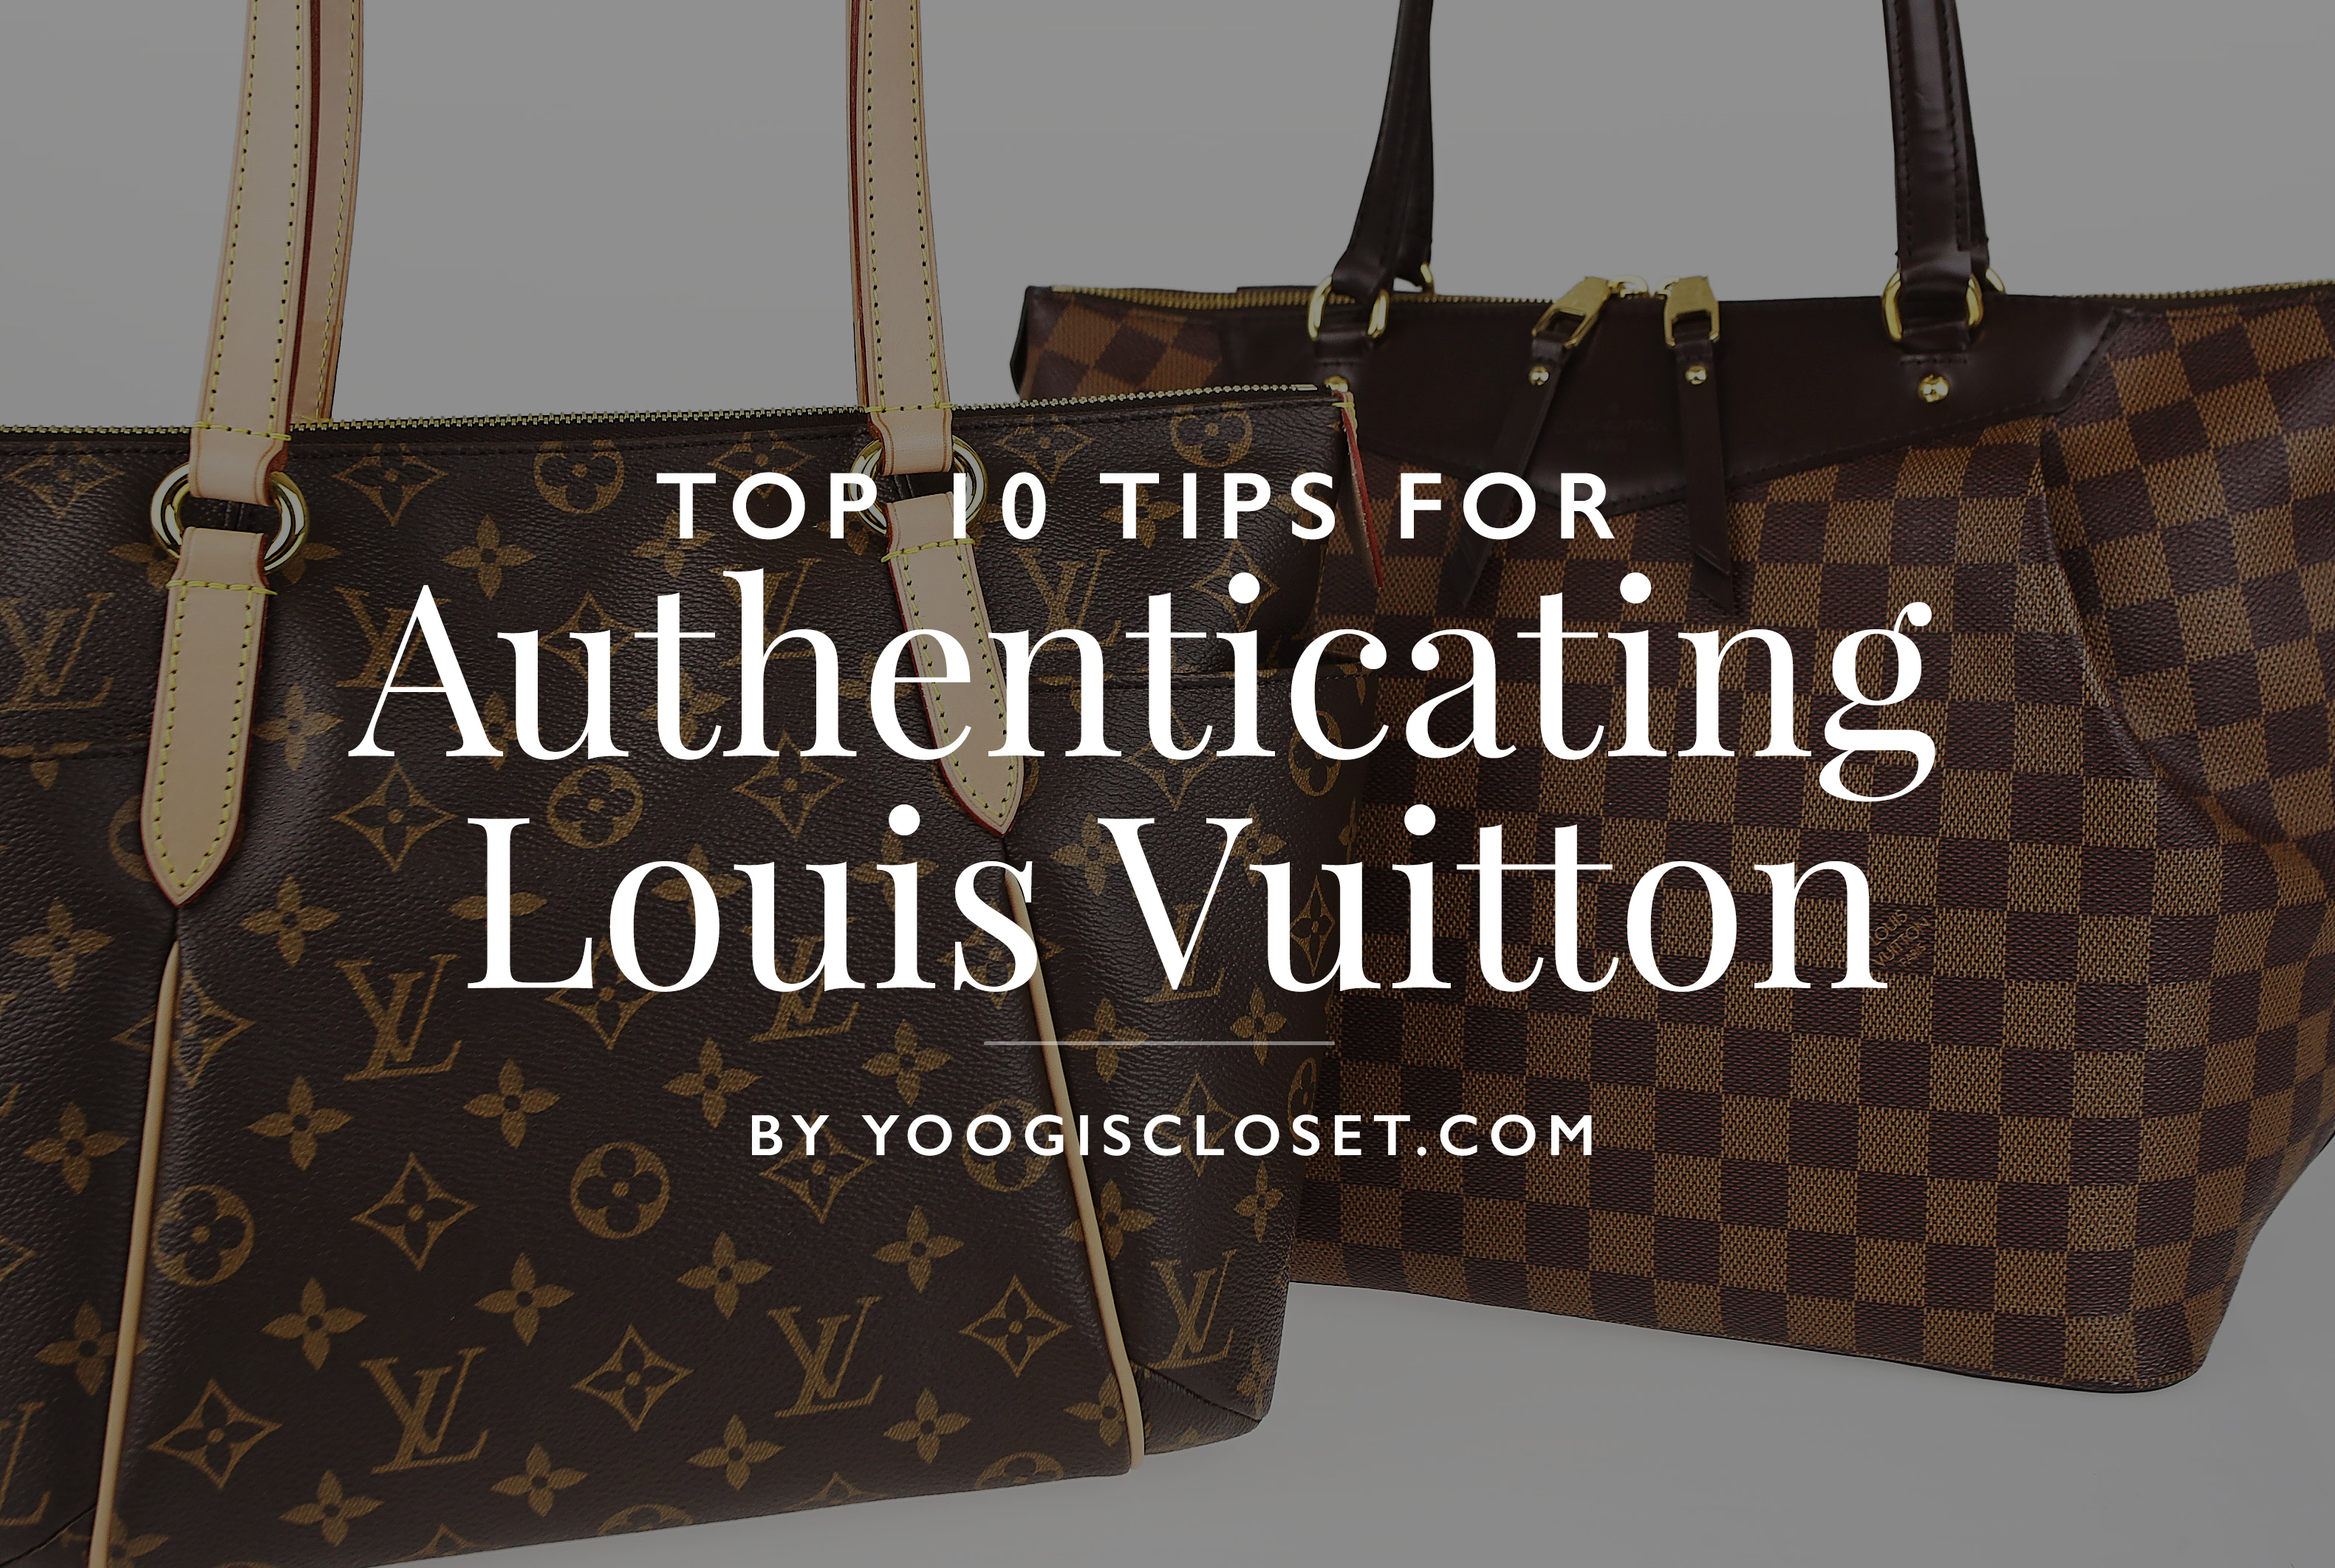 Top 10 Tips For Authenticating Louis Vuitton - Yoogi s Closet Blog 7e2004e8d8d8b